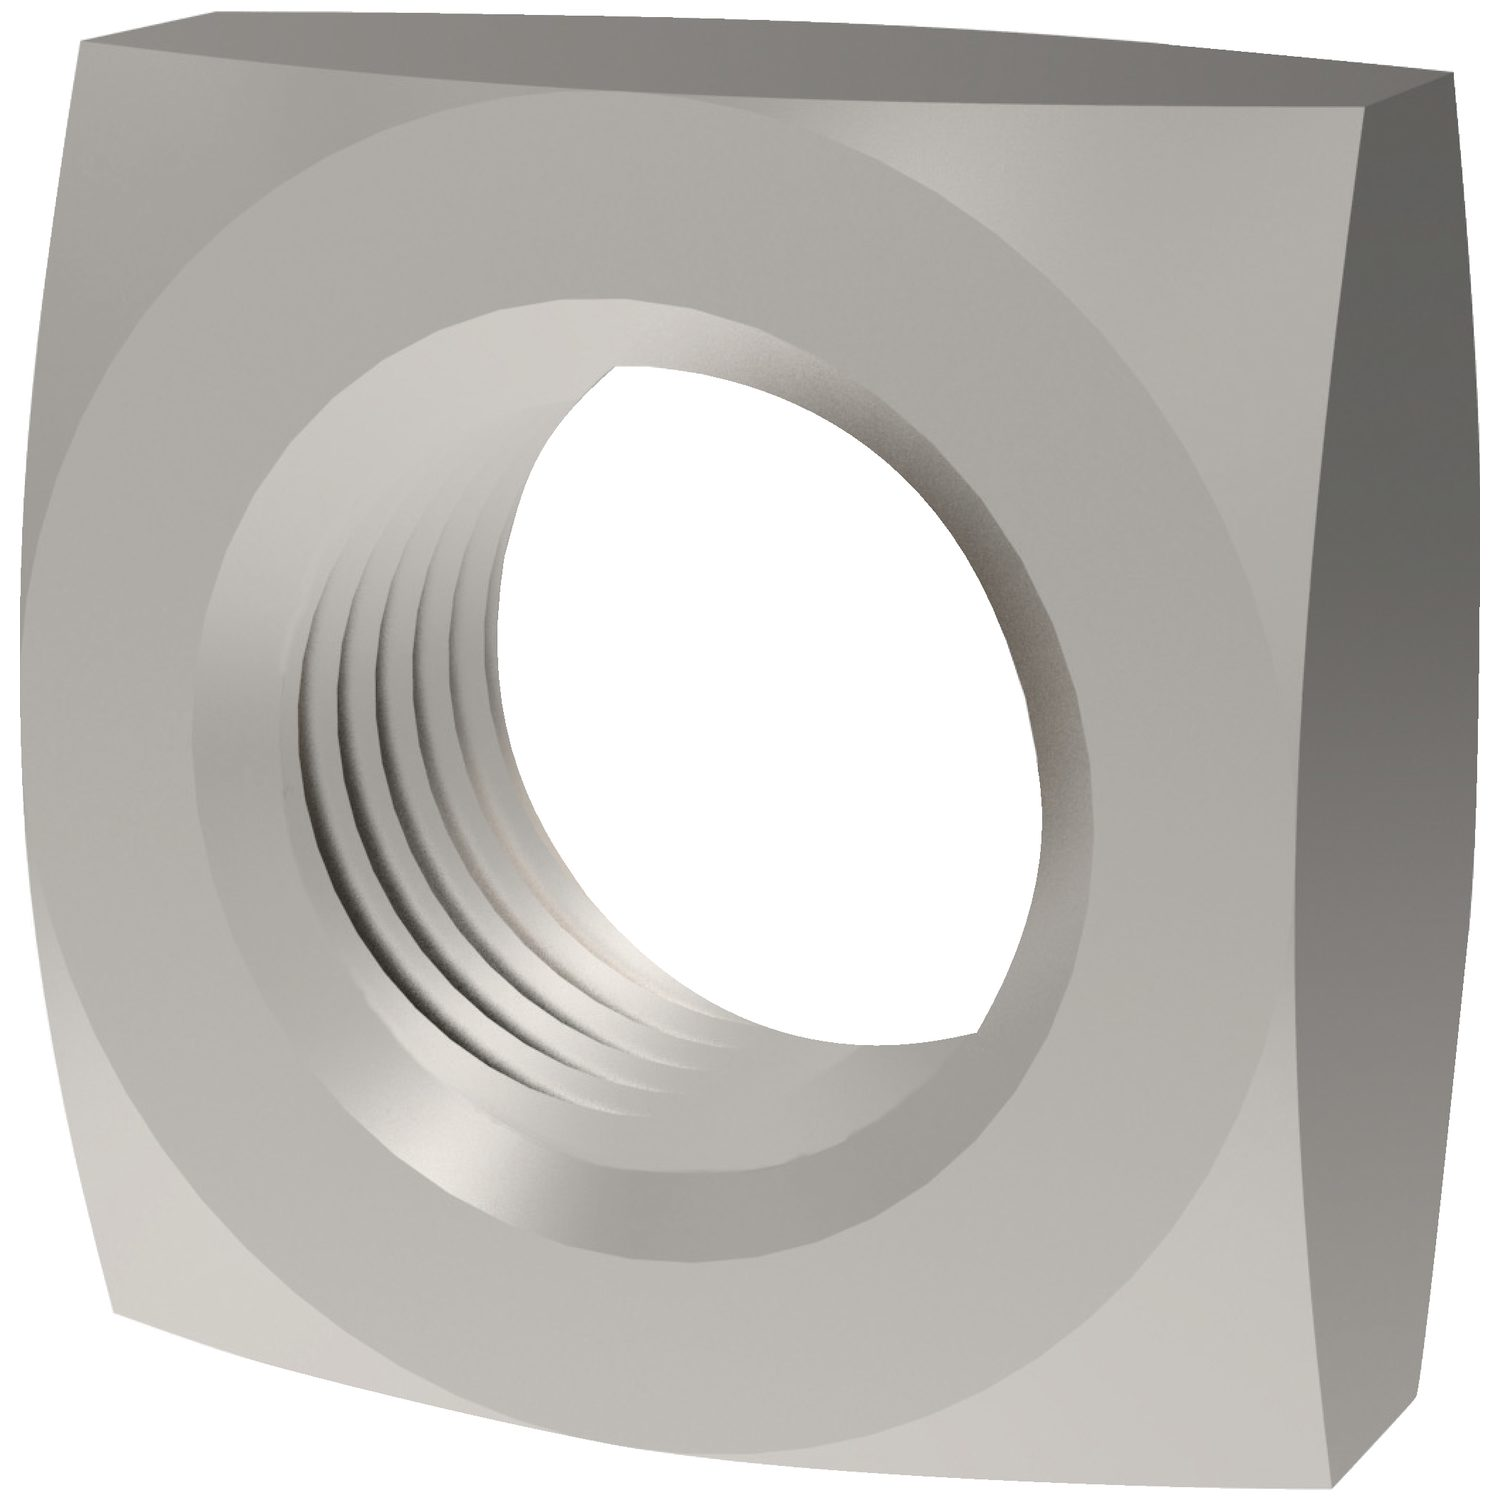 Product P0324.SC, Chamfered Square Nuts Chamfered - steel, self-colour /